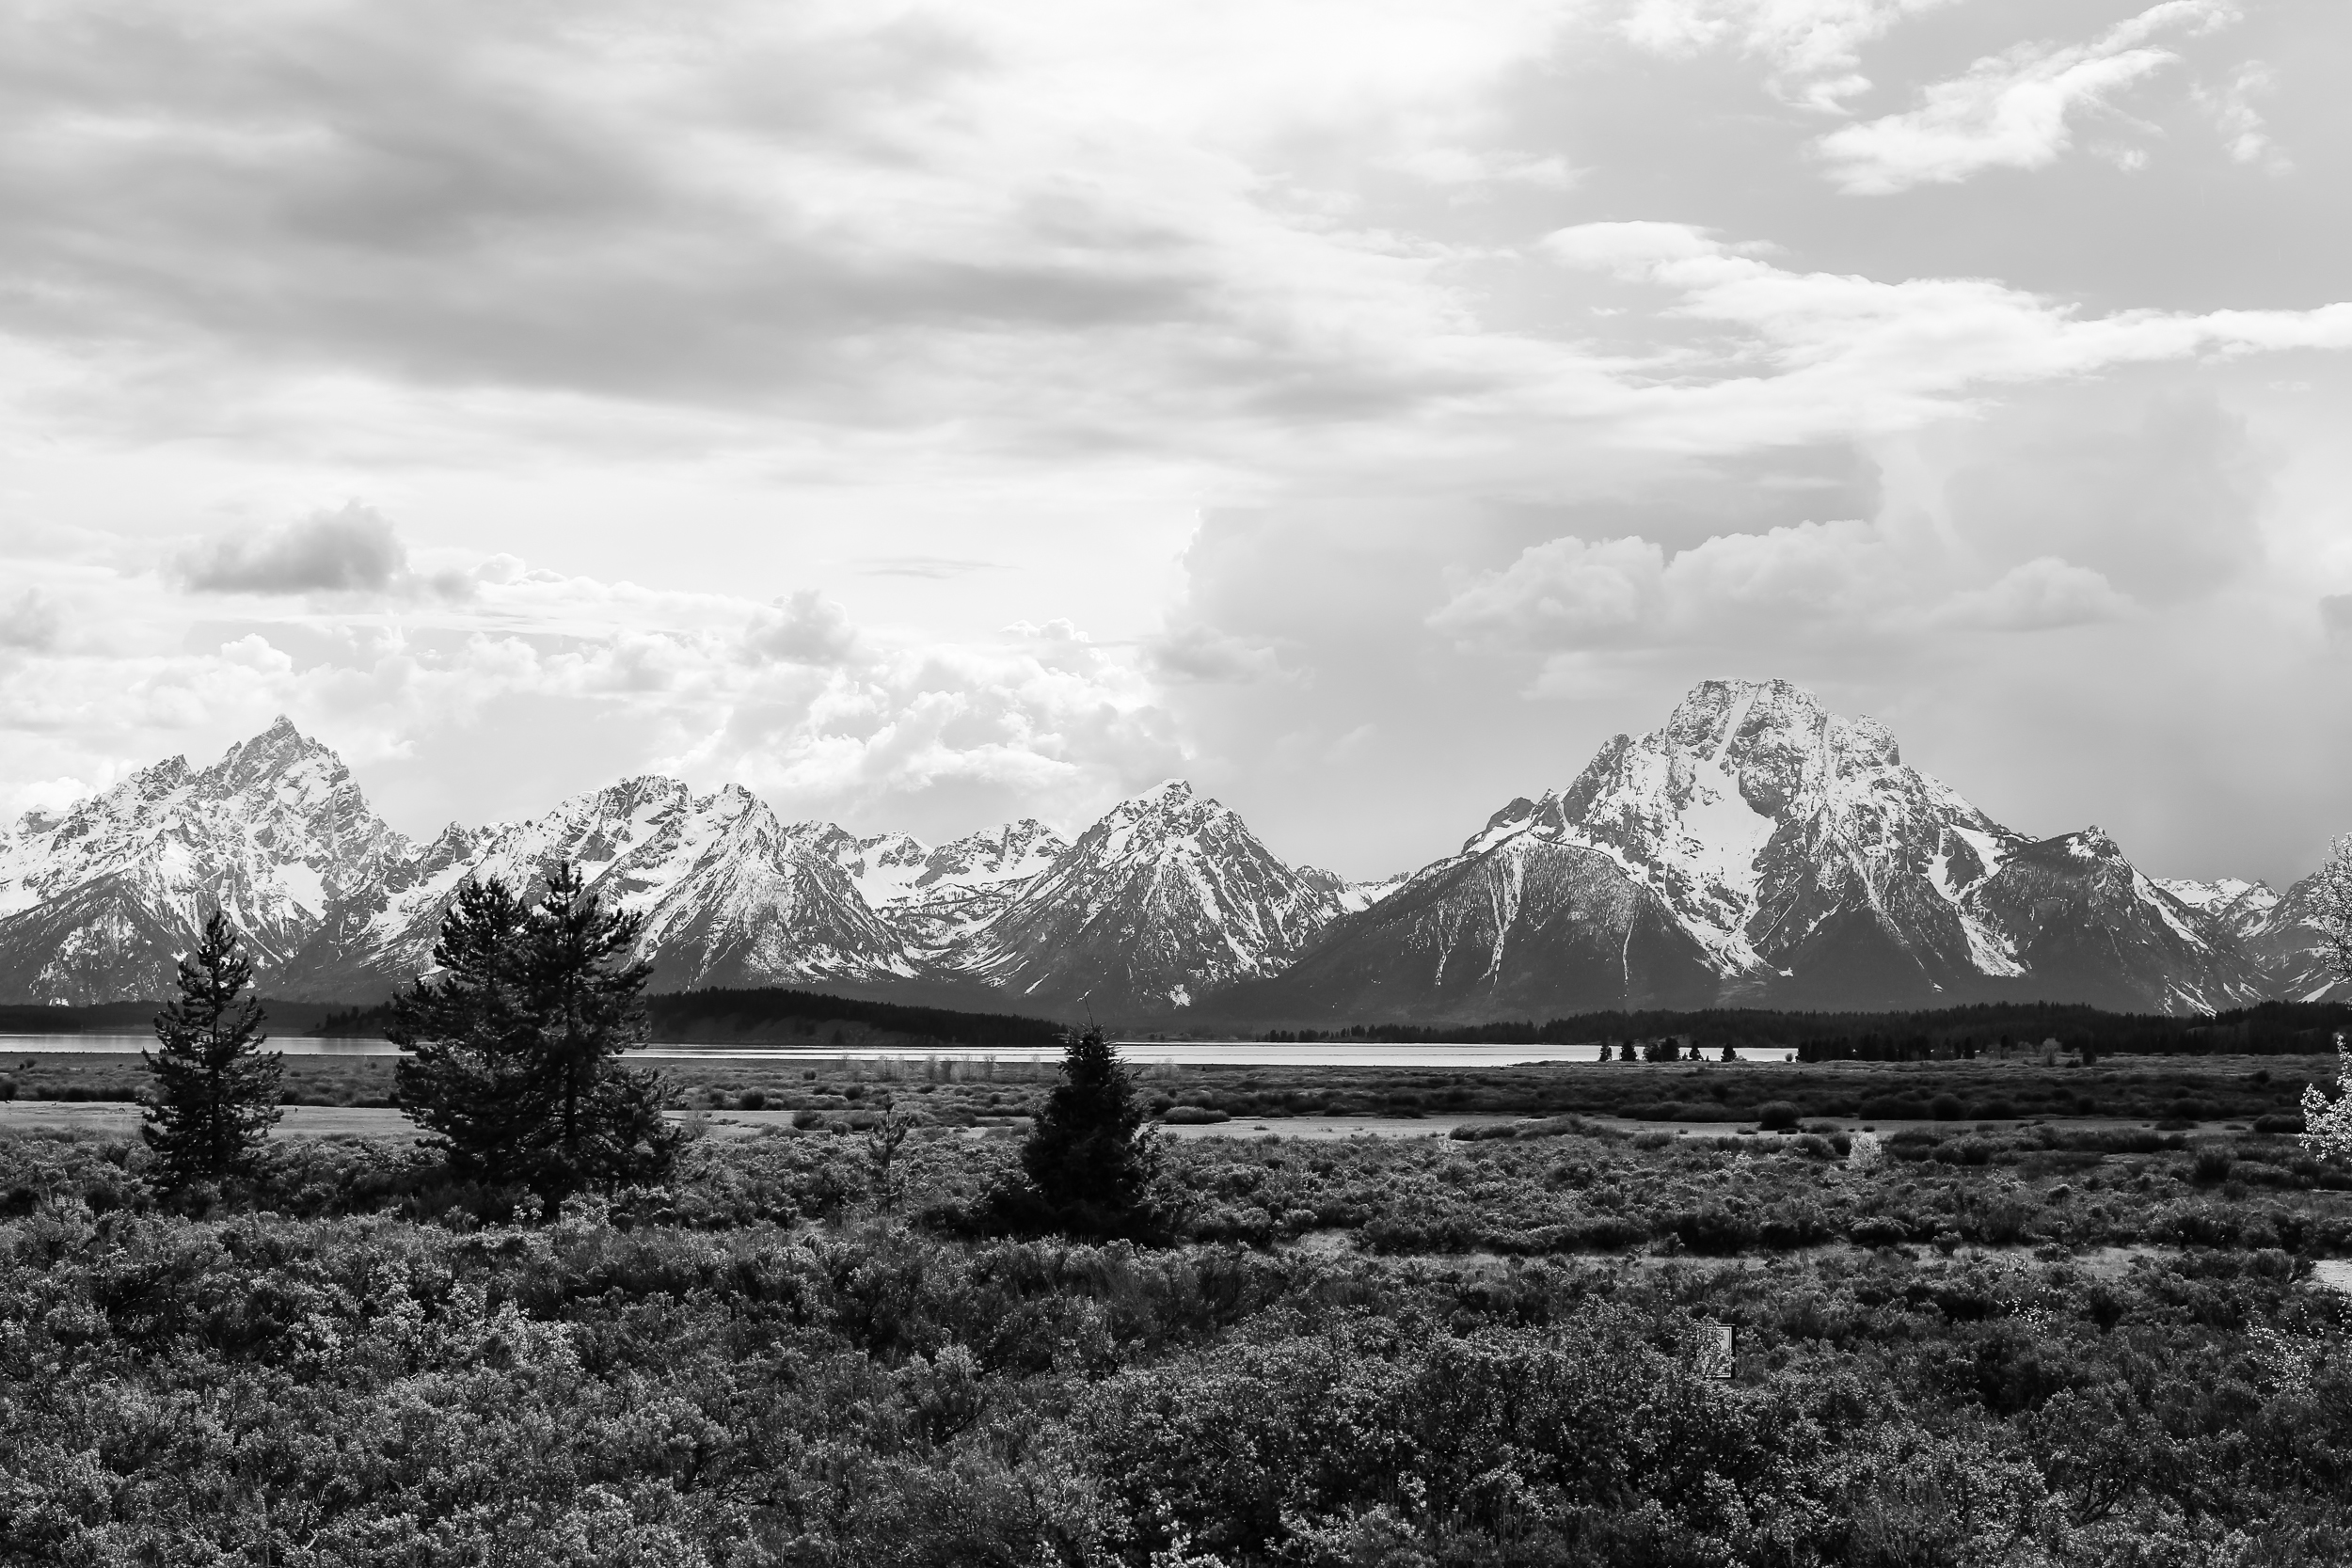 """View from within Grand Teton National Park, Wyoming , on the drive up to Yellowstone from Salt Lake City. If you do this trip, definitely take the """"scenic"""" route! Shot with 50mm lens on a Canon 5D, ISO 100, f/8.0, 1/160 secs."""